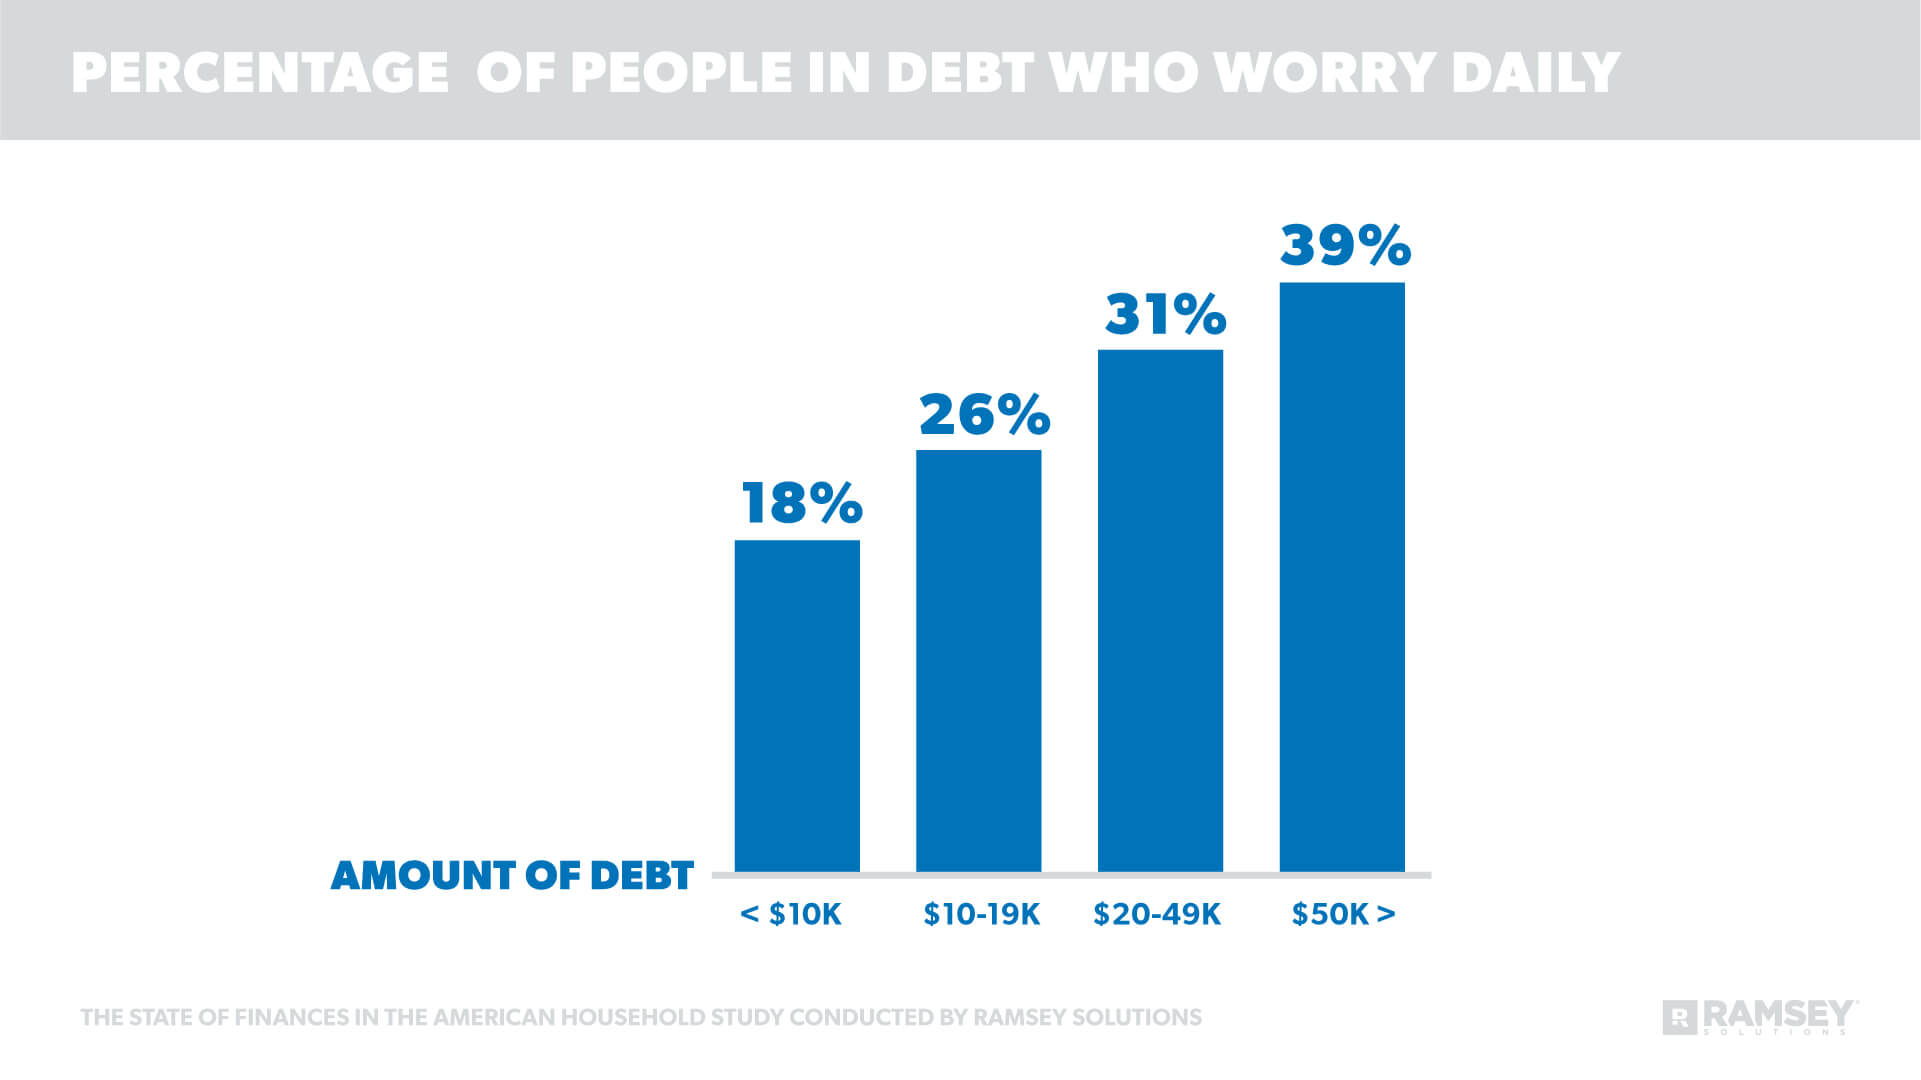 Percentage of People in Debt Who Worry Daily